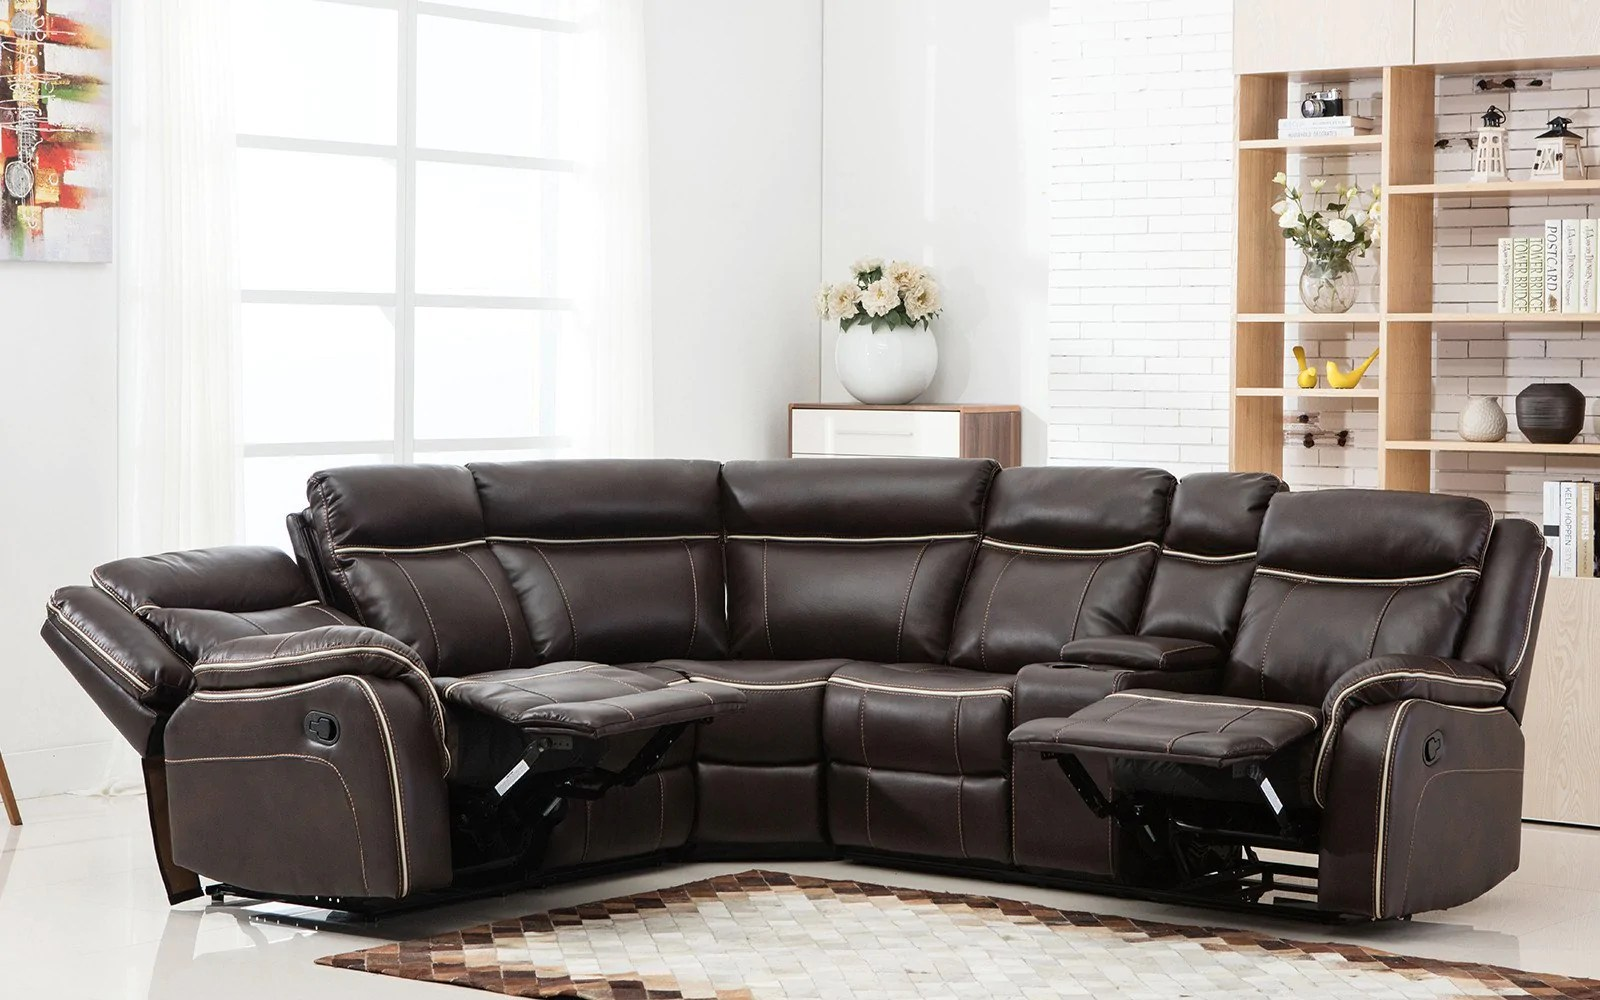 Lounge Reclining Chaise Sectional Leather